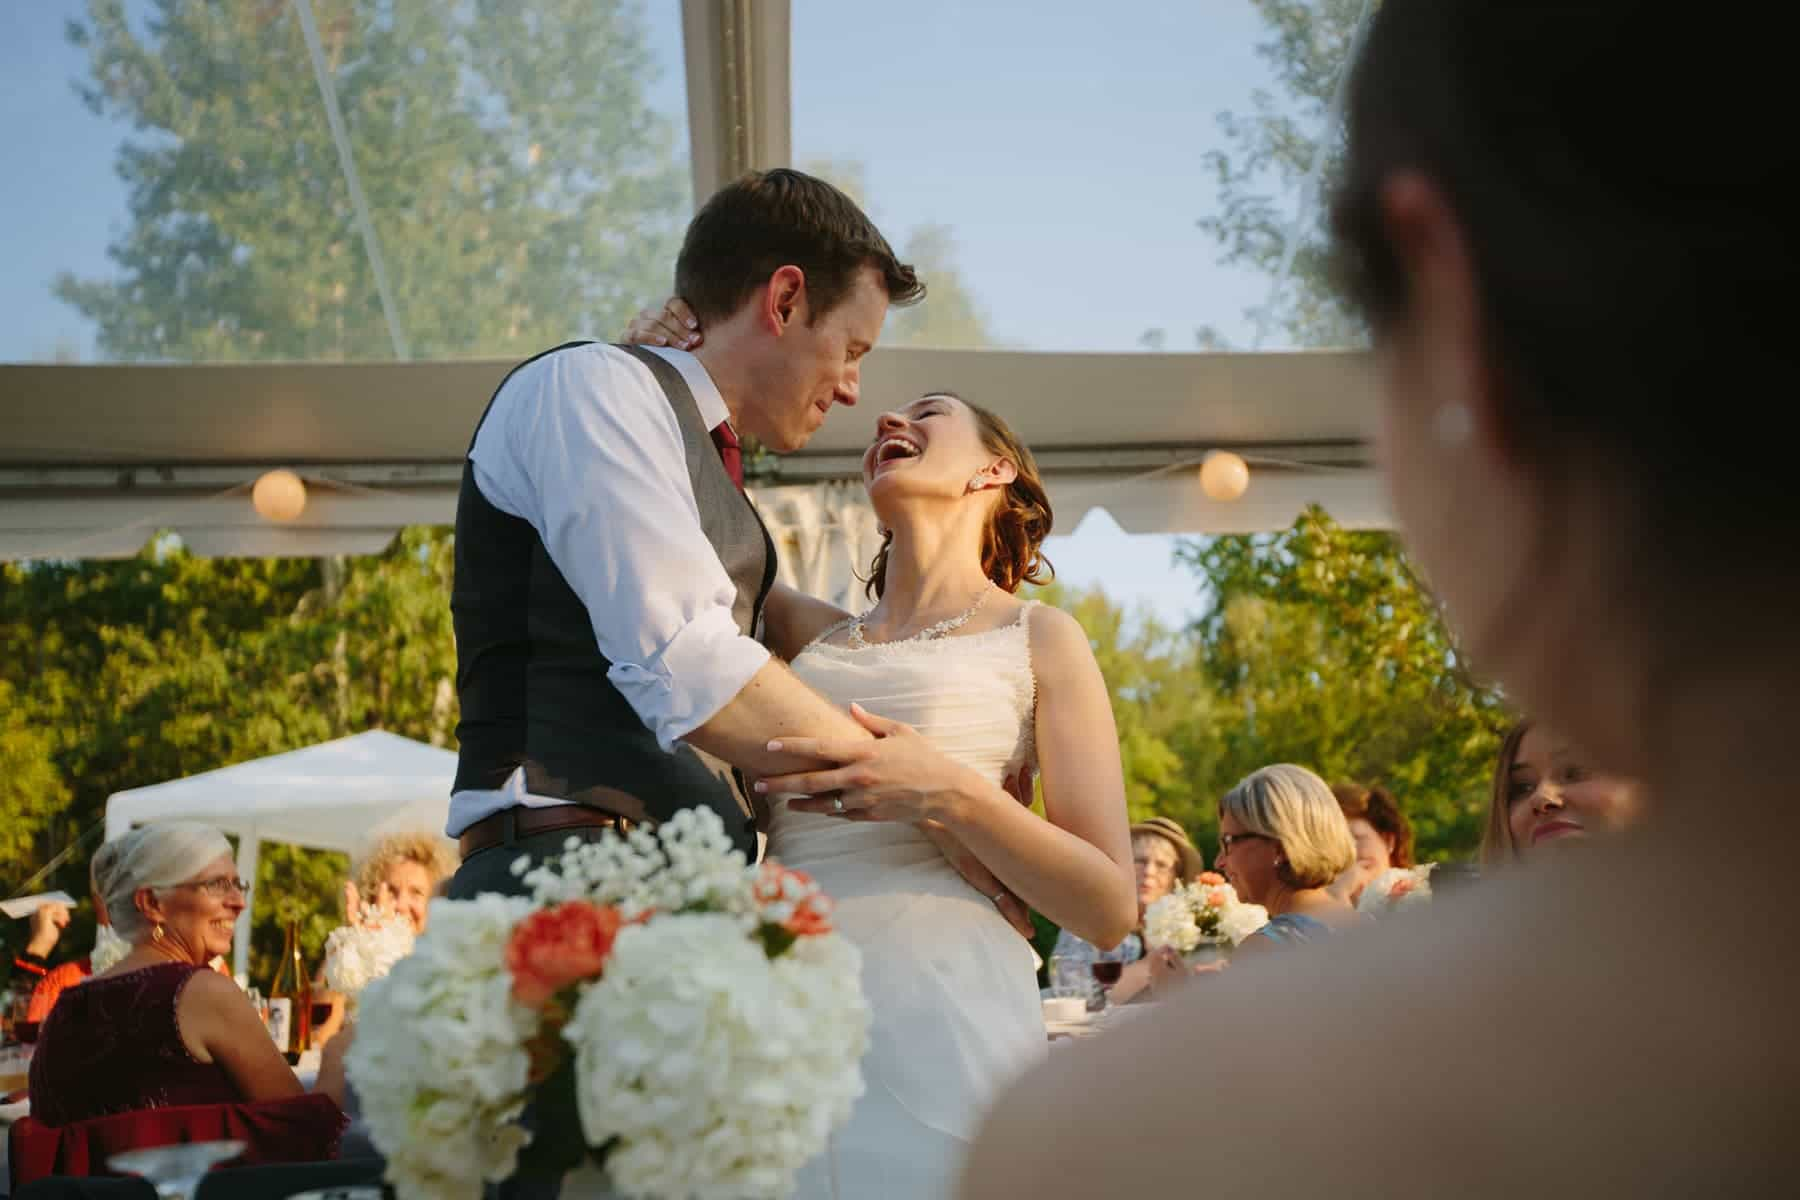 The groom bends the bride over his arm as she laughs during the summer dinner reception in a clear top tent in these backyard wedding photos.